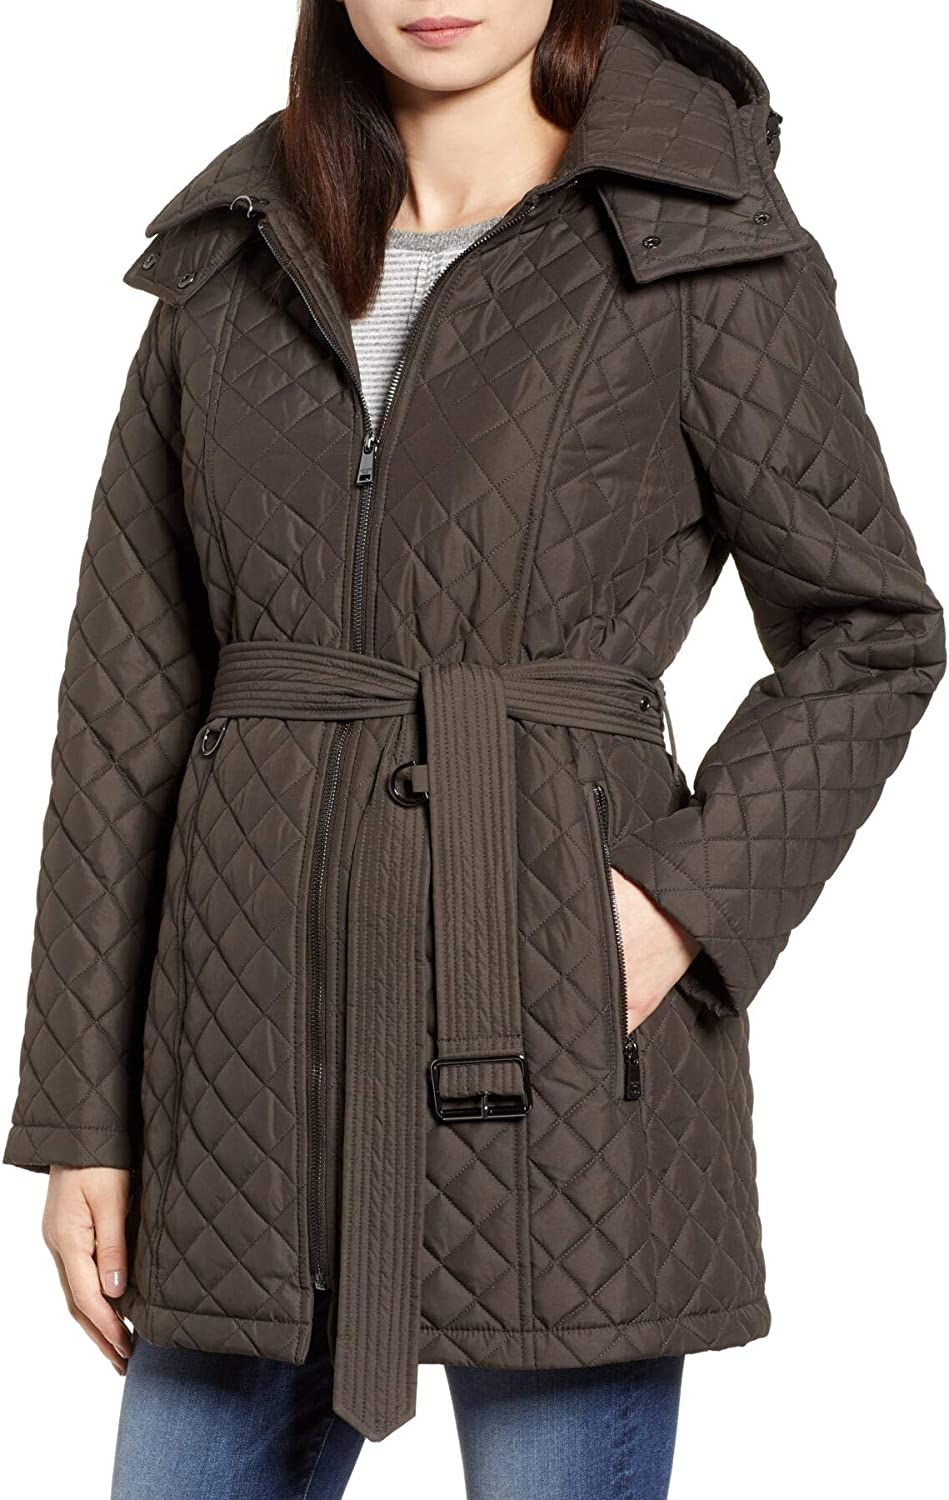 London Fog Women's Diamond Quilted Hooded Jacket